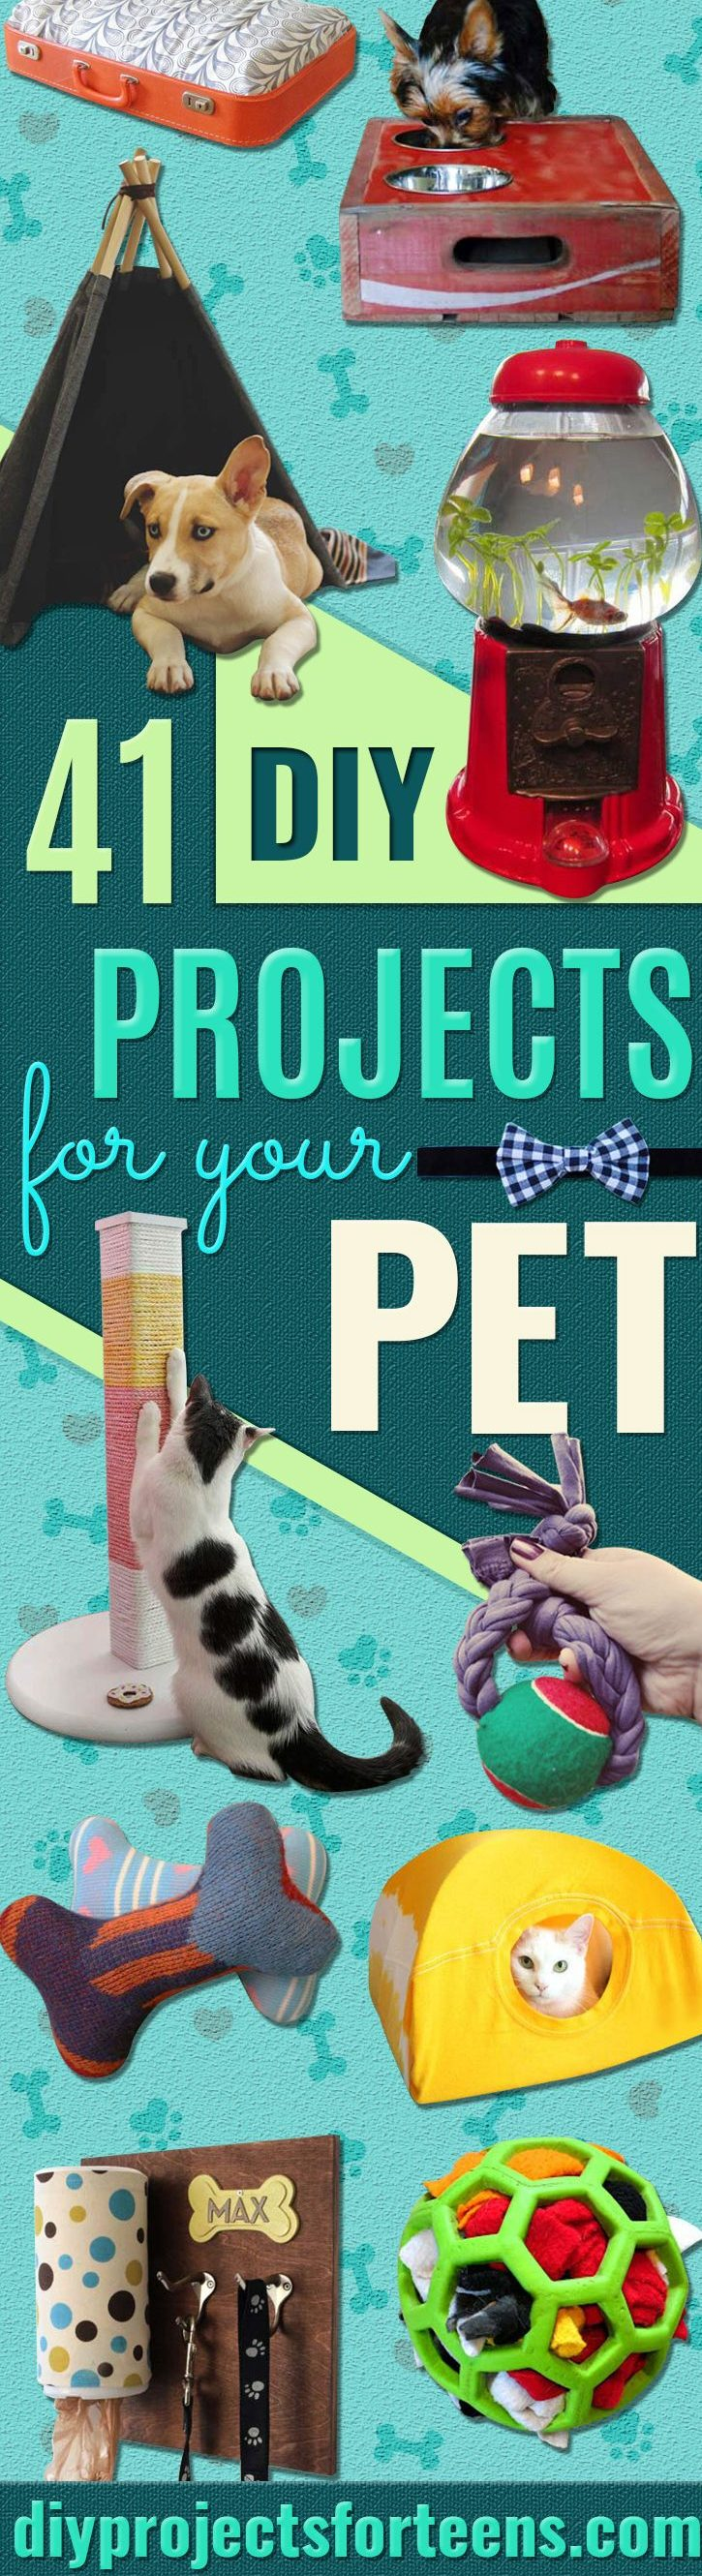 DIY Projects for Your Pet -Cat and Dog Beds, Treats, Collars and Easy Crafts to Make for Toys - Homemade Dog Biscuits, Food and Treats - Fun Ideas for Teen, Tweens and Adults to Make for Pets